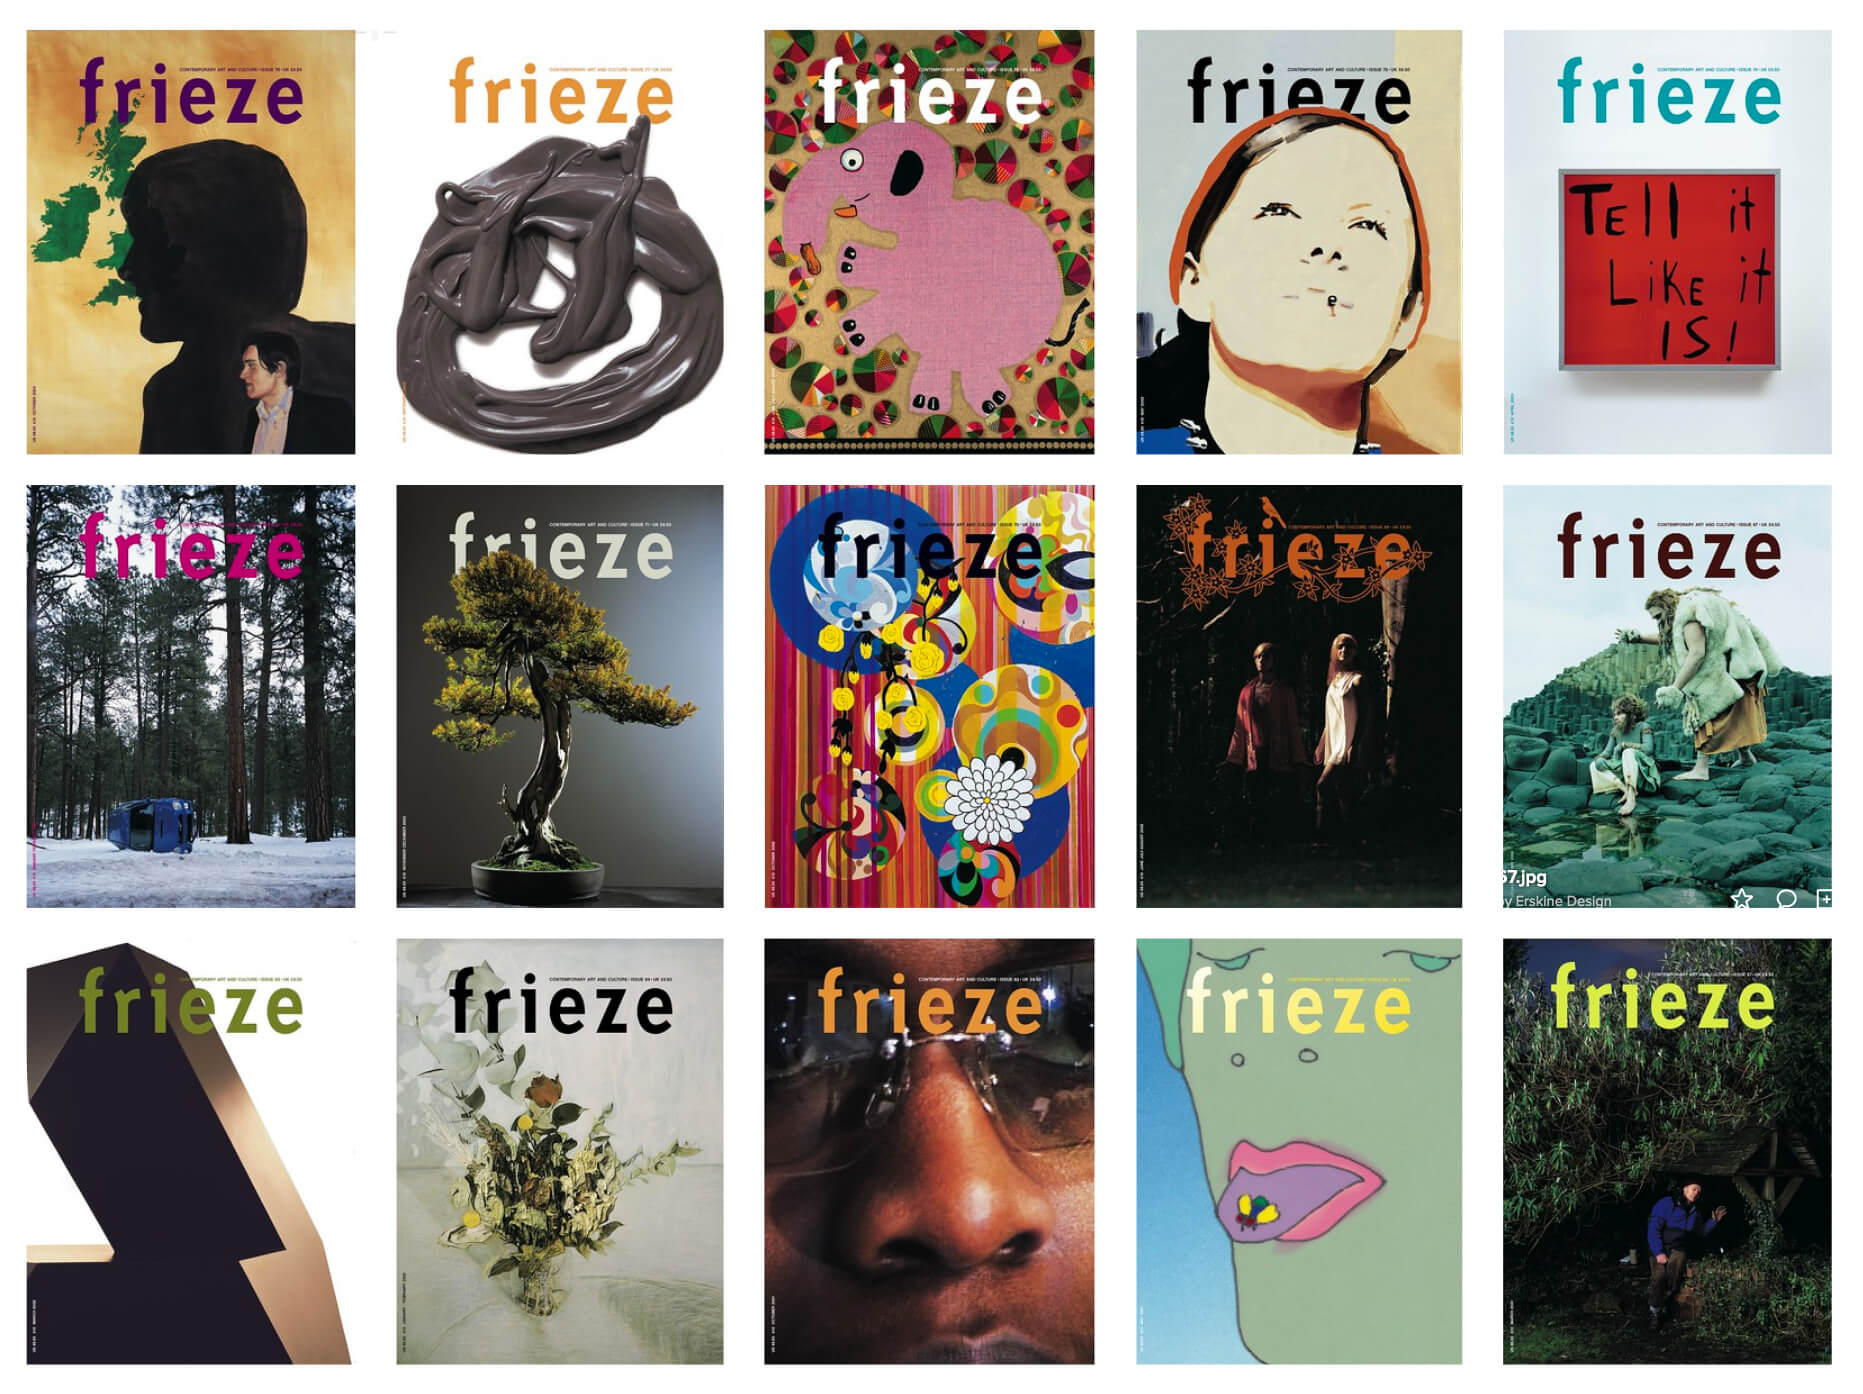 A selection of Frieze magazine covers